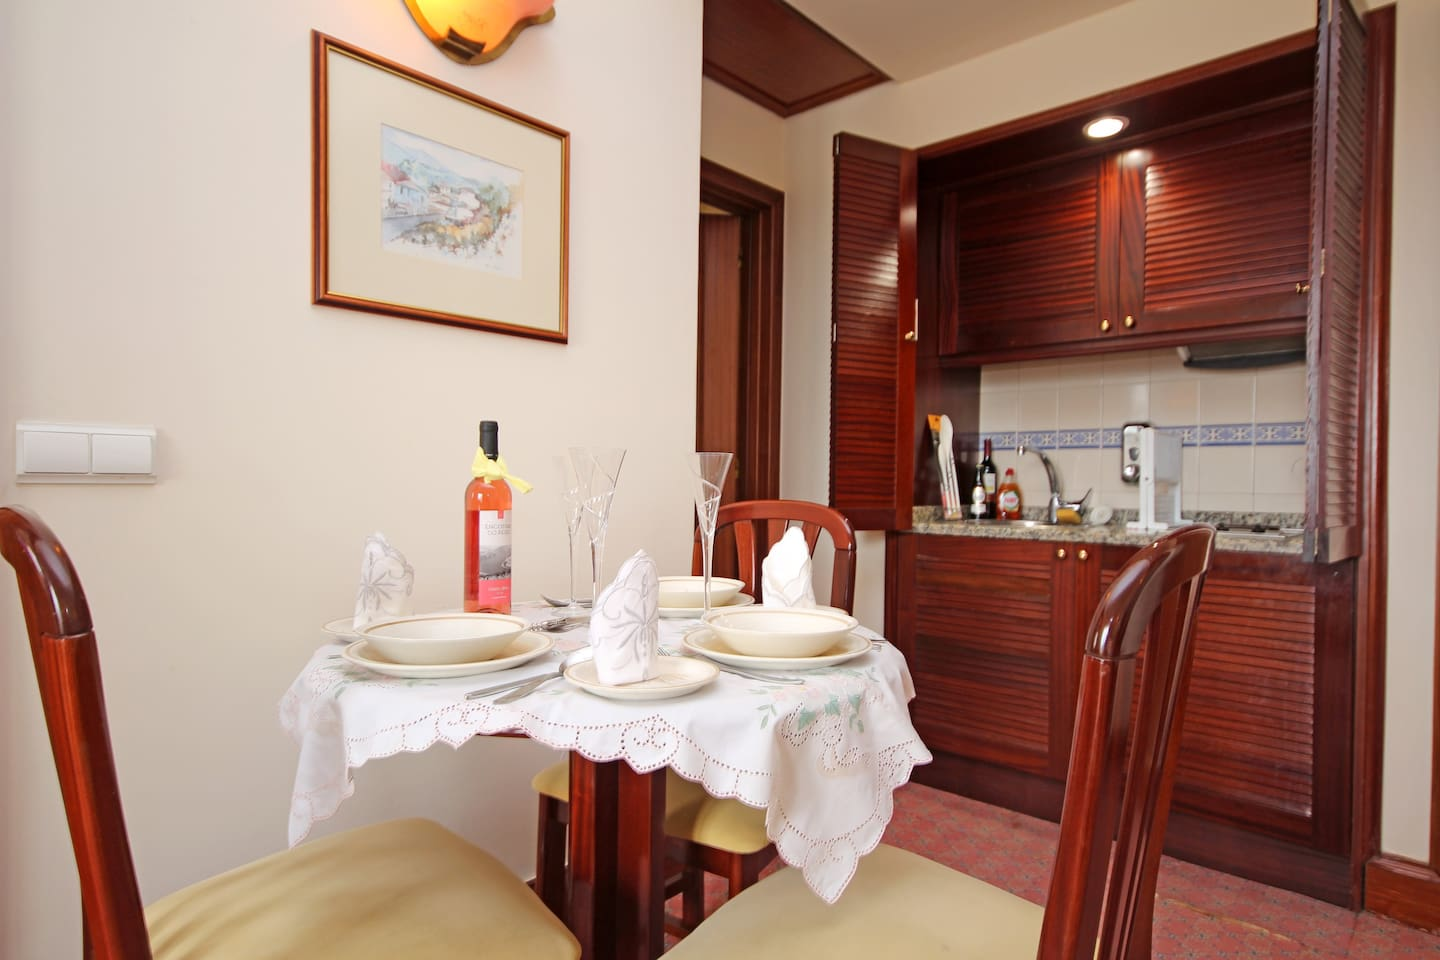 Kitchen and dining facilities